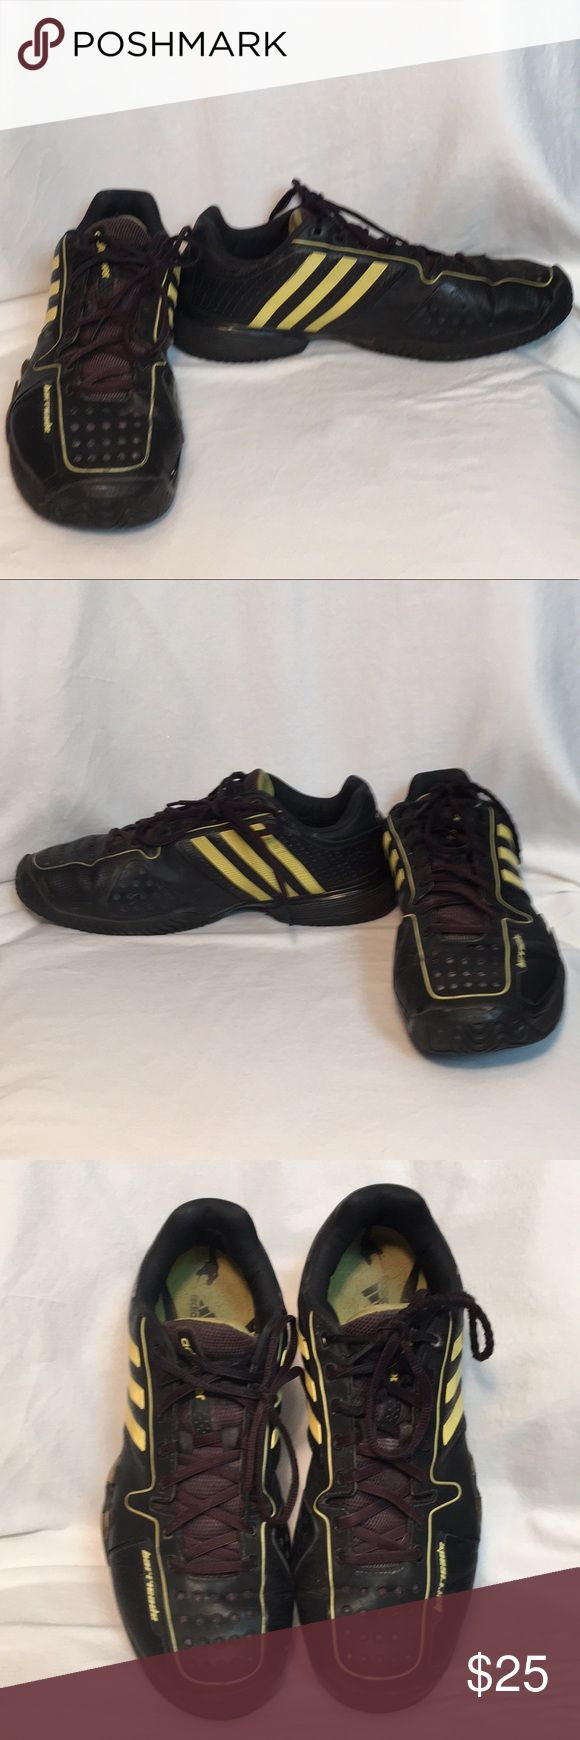 Adidas Barricades Men's sz 11 Shoes Adidas Barricades Men's size 11 shoes in good condition and still a lot of life left in them  🌻🌻BUNDLE 3 or More SAVE 20%!!! Spend 💲20 or more and choose a FREE GIFT❗️Choose your free gift by commenting on the item..... items with a 🎁 qualify as a free gift! adidas Shoes Sneakers